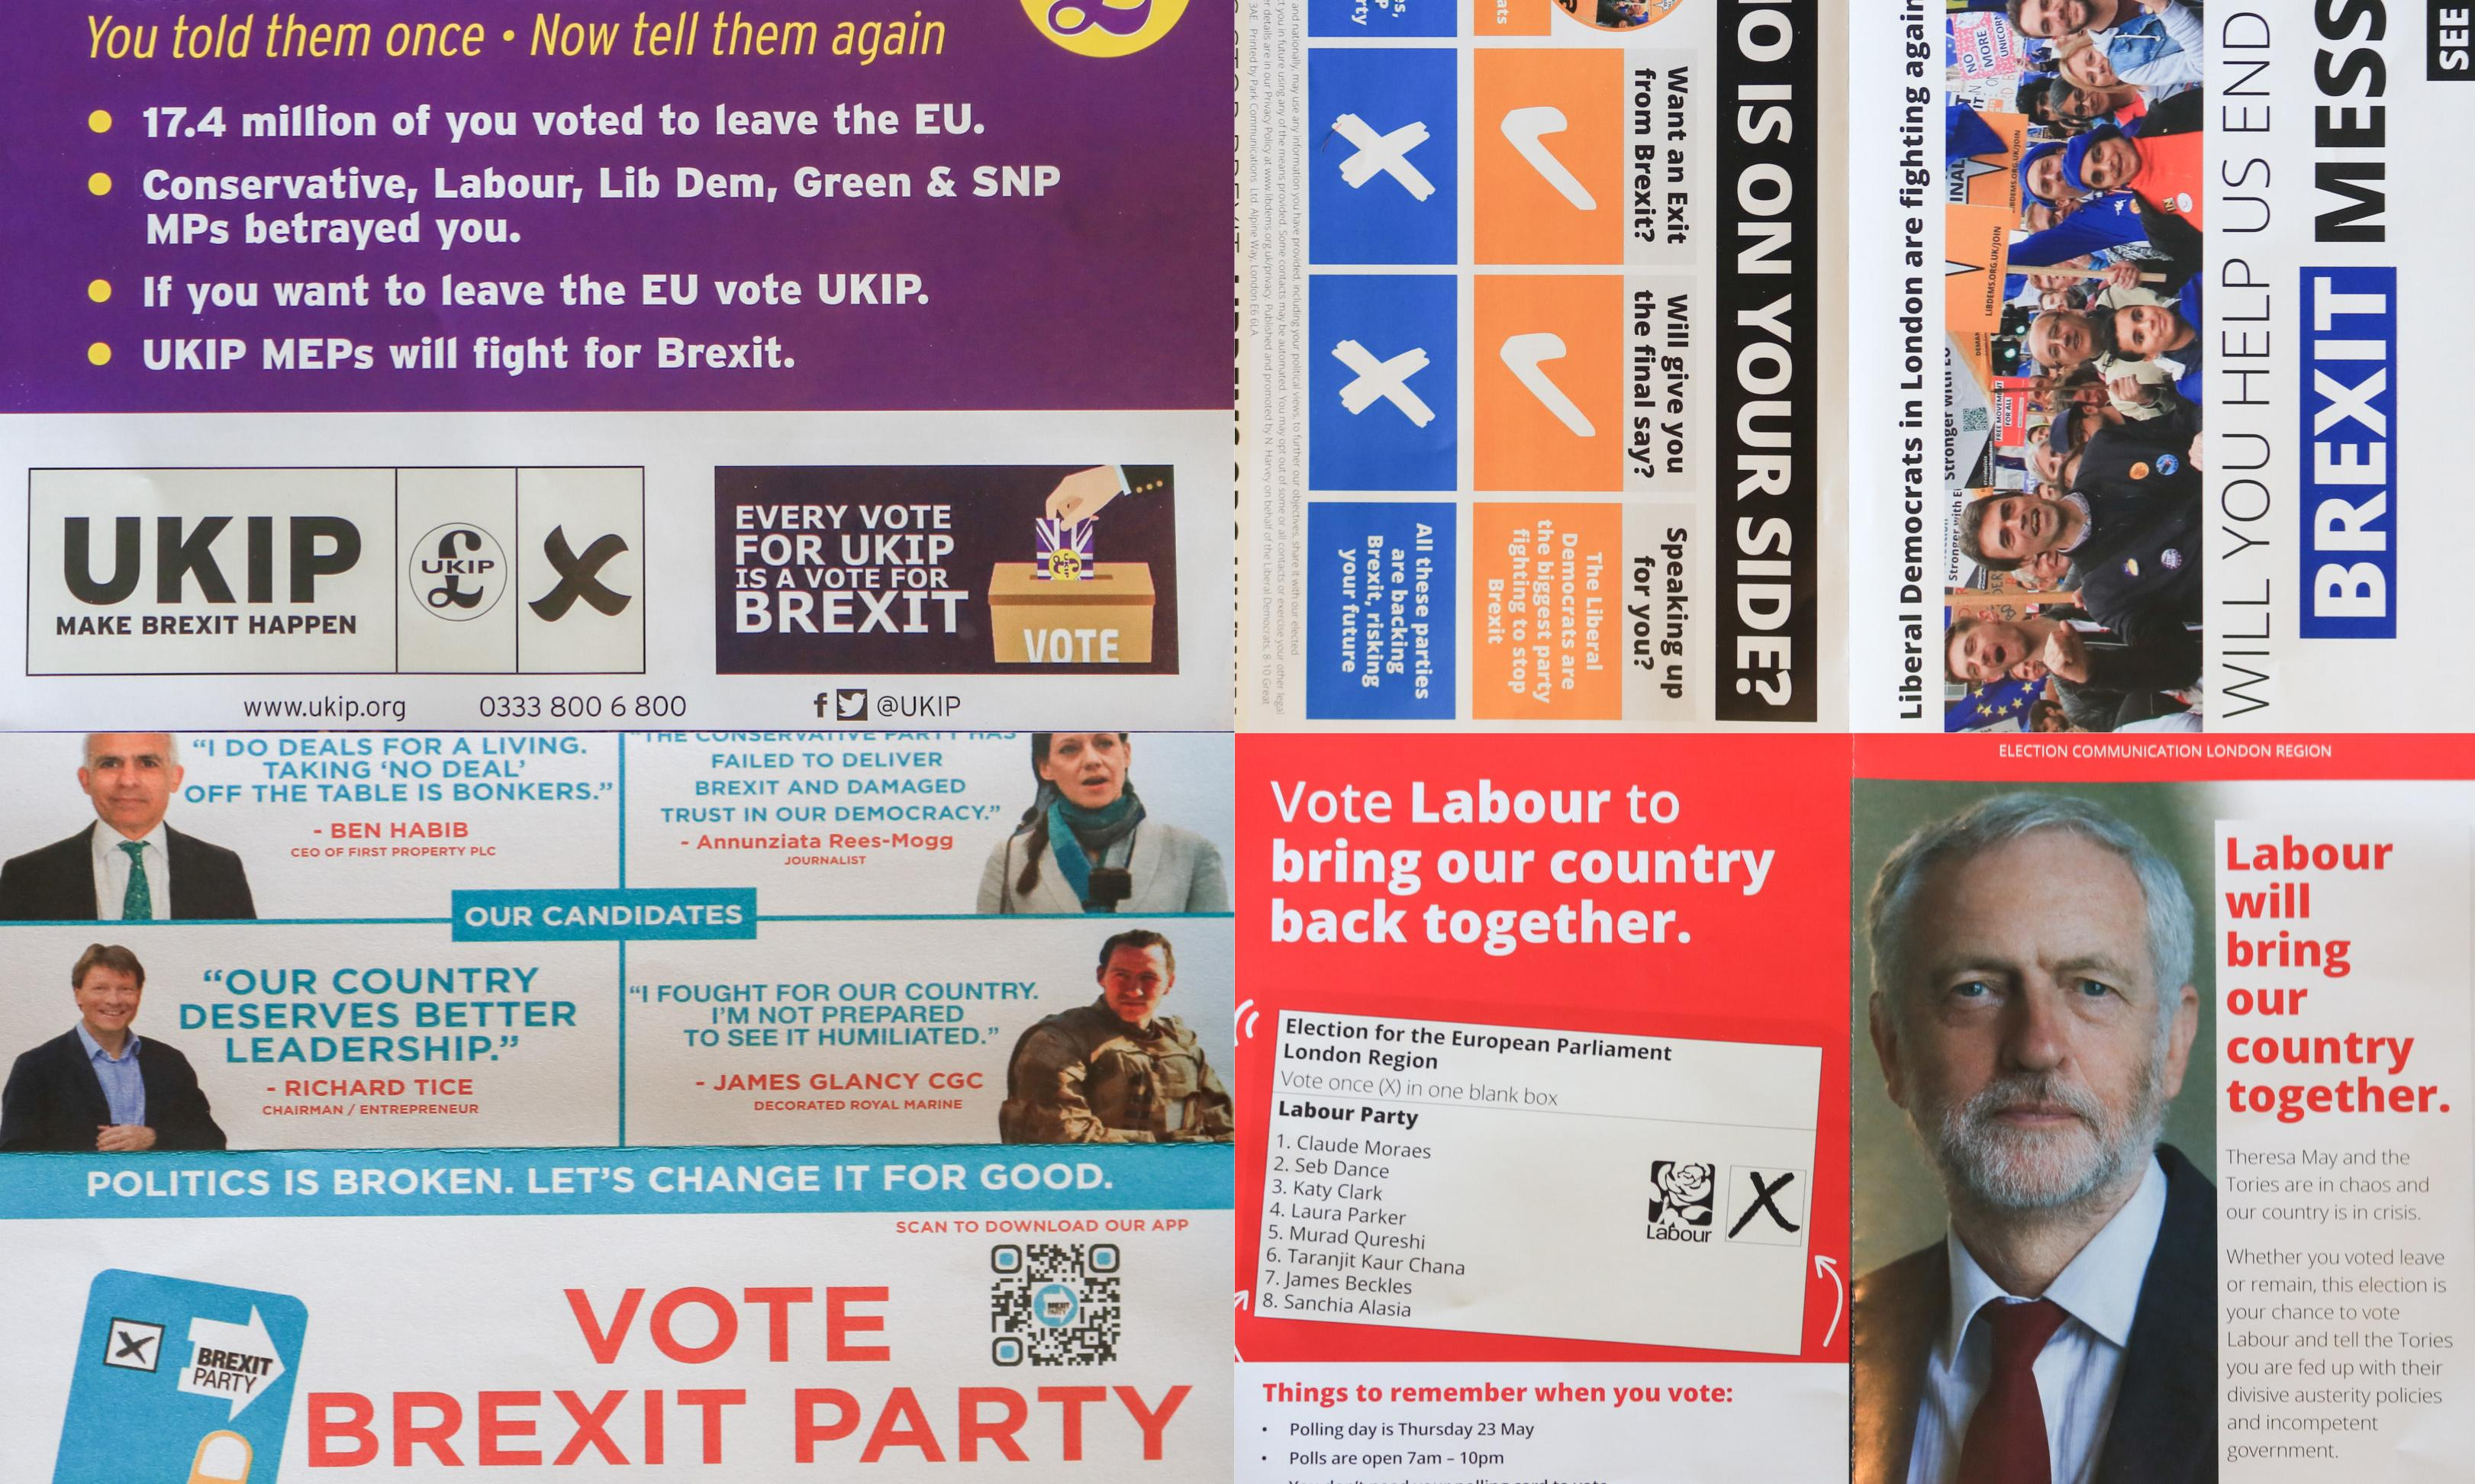 European elections 2019: am I registered to vote and why do I get those leaflets?